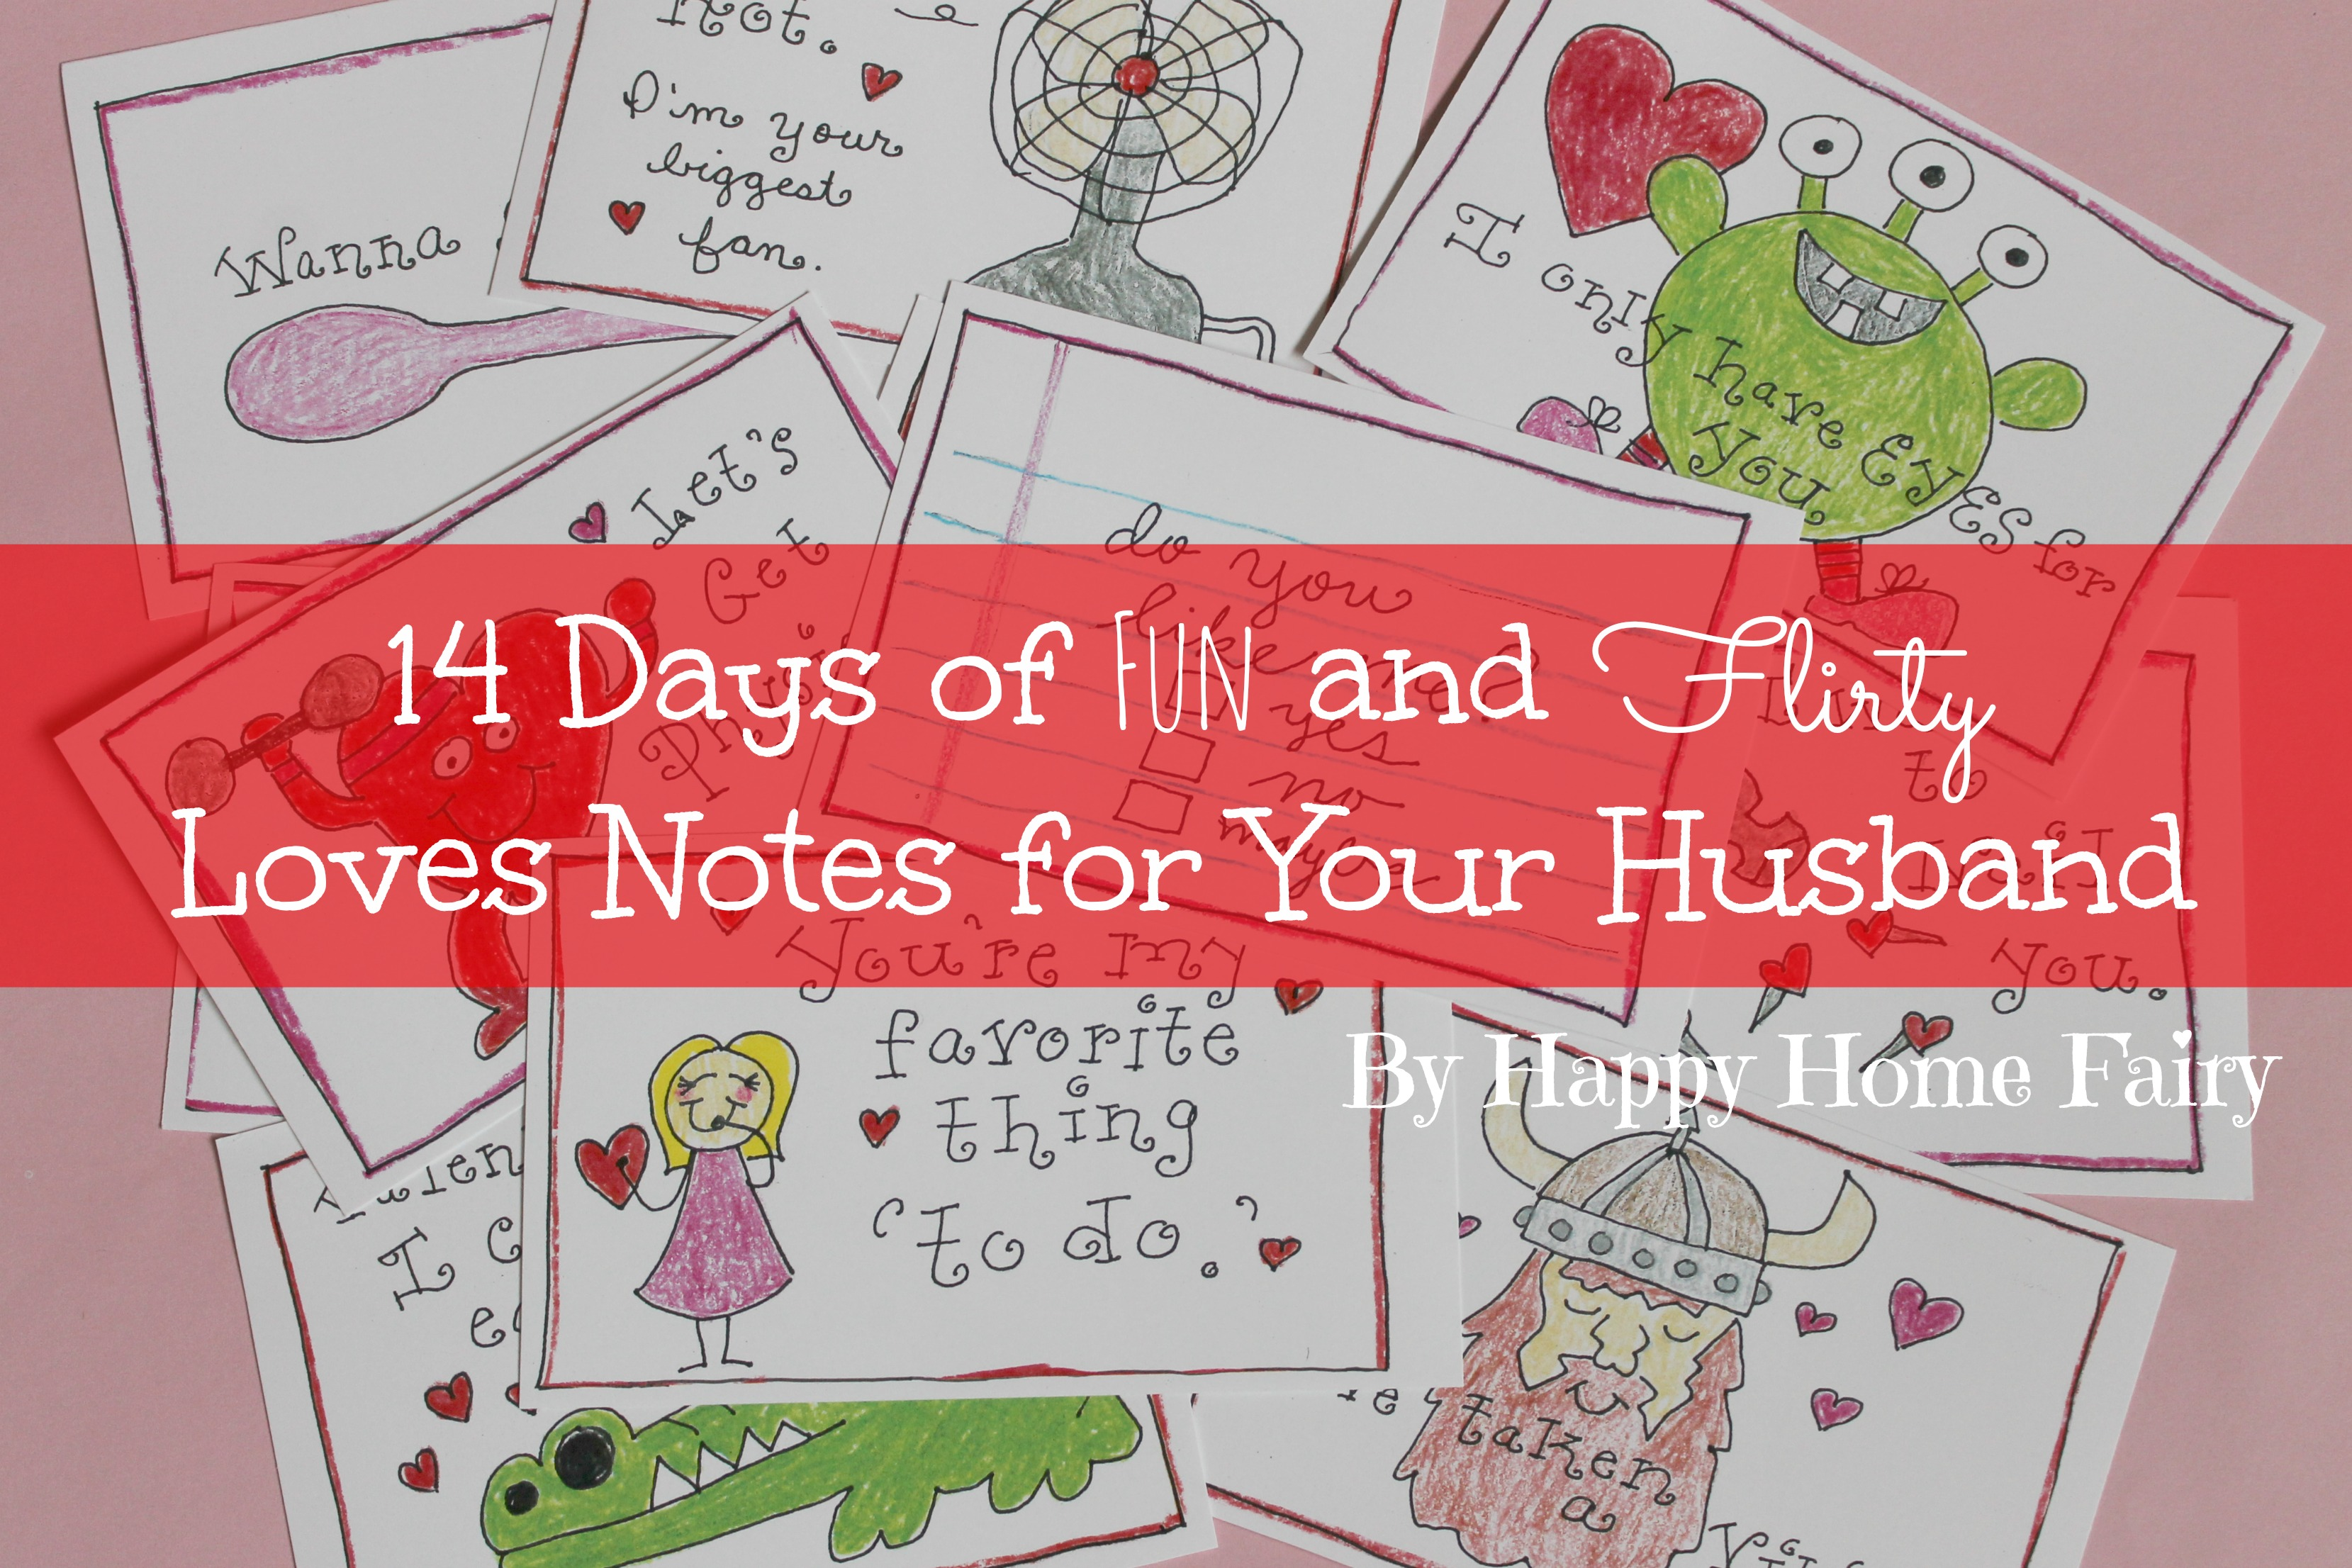 image about Free Printable Valentines Day Cards for Your Husband referred to as 14 Times of Exciting and Flirty Enjoy Notes for Your Spouse - Cost-free